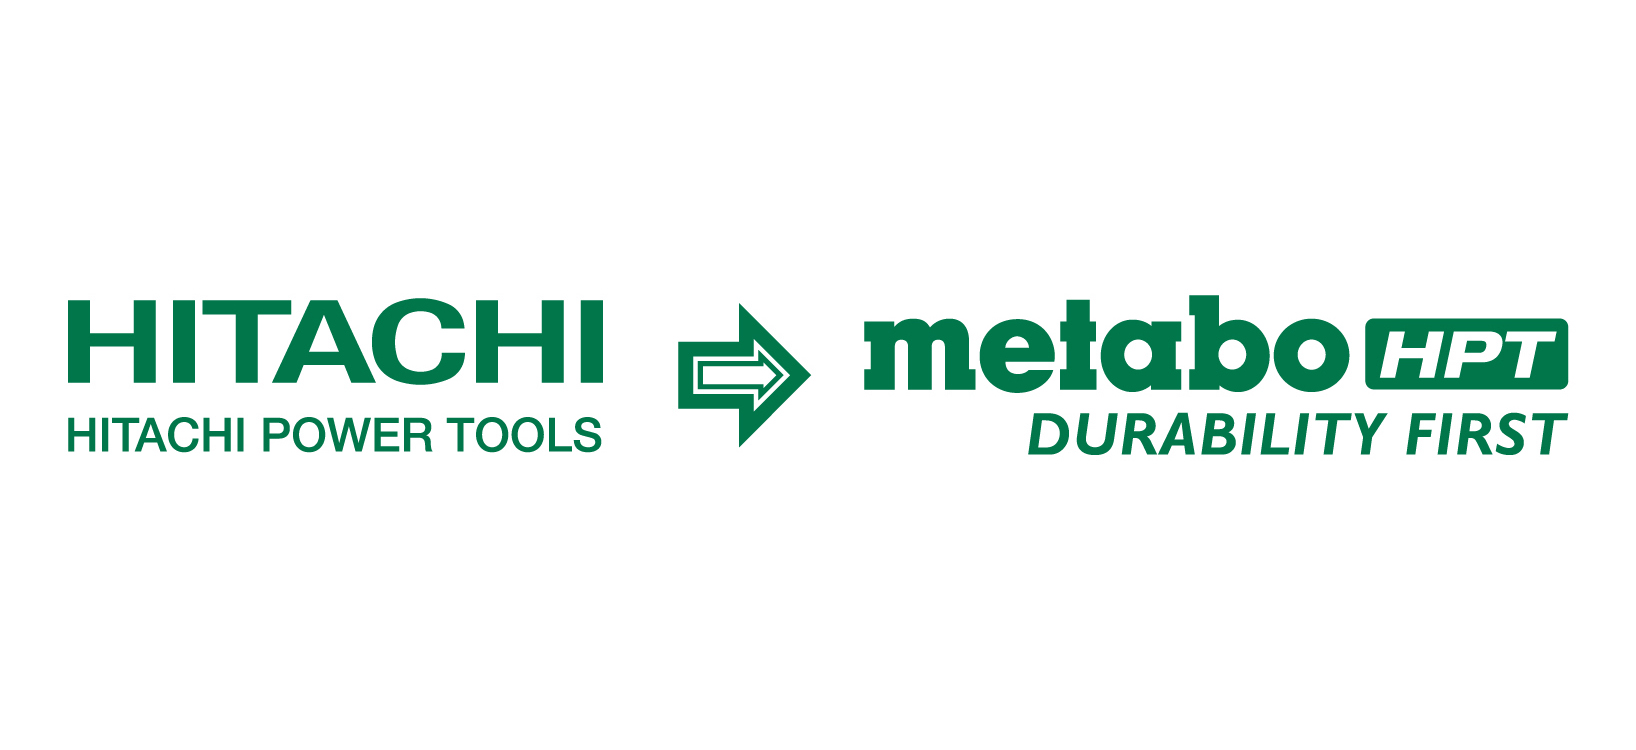 Hitachi is now Metabo HPT